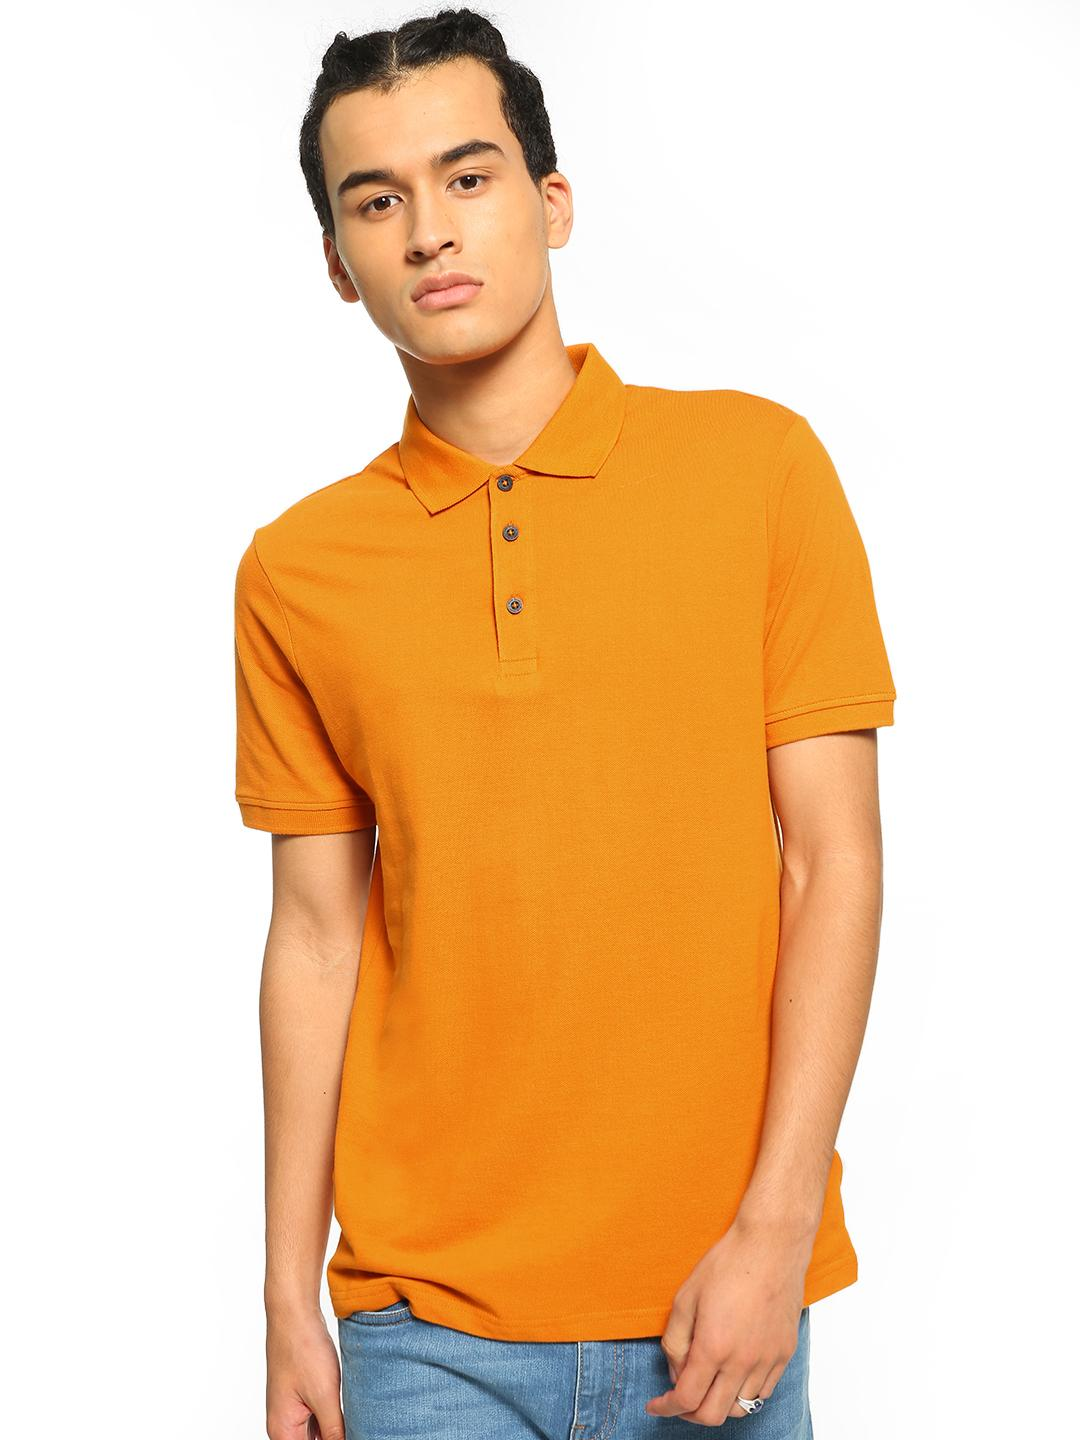 Blue Saint Orange Basic Short Sleeve Polo Shirt 1